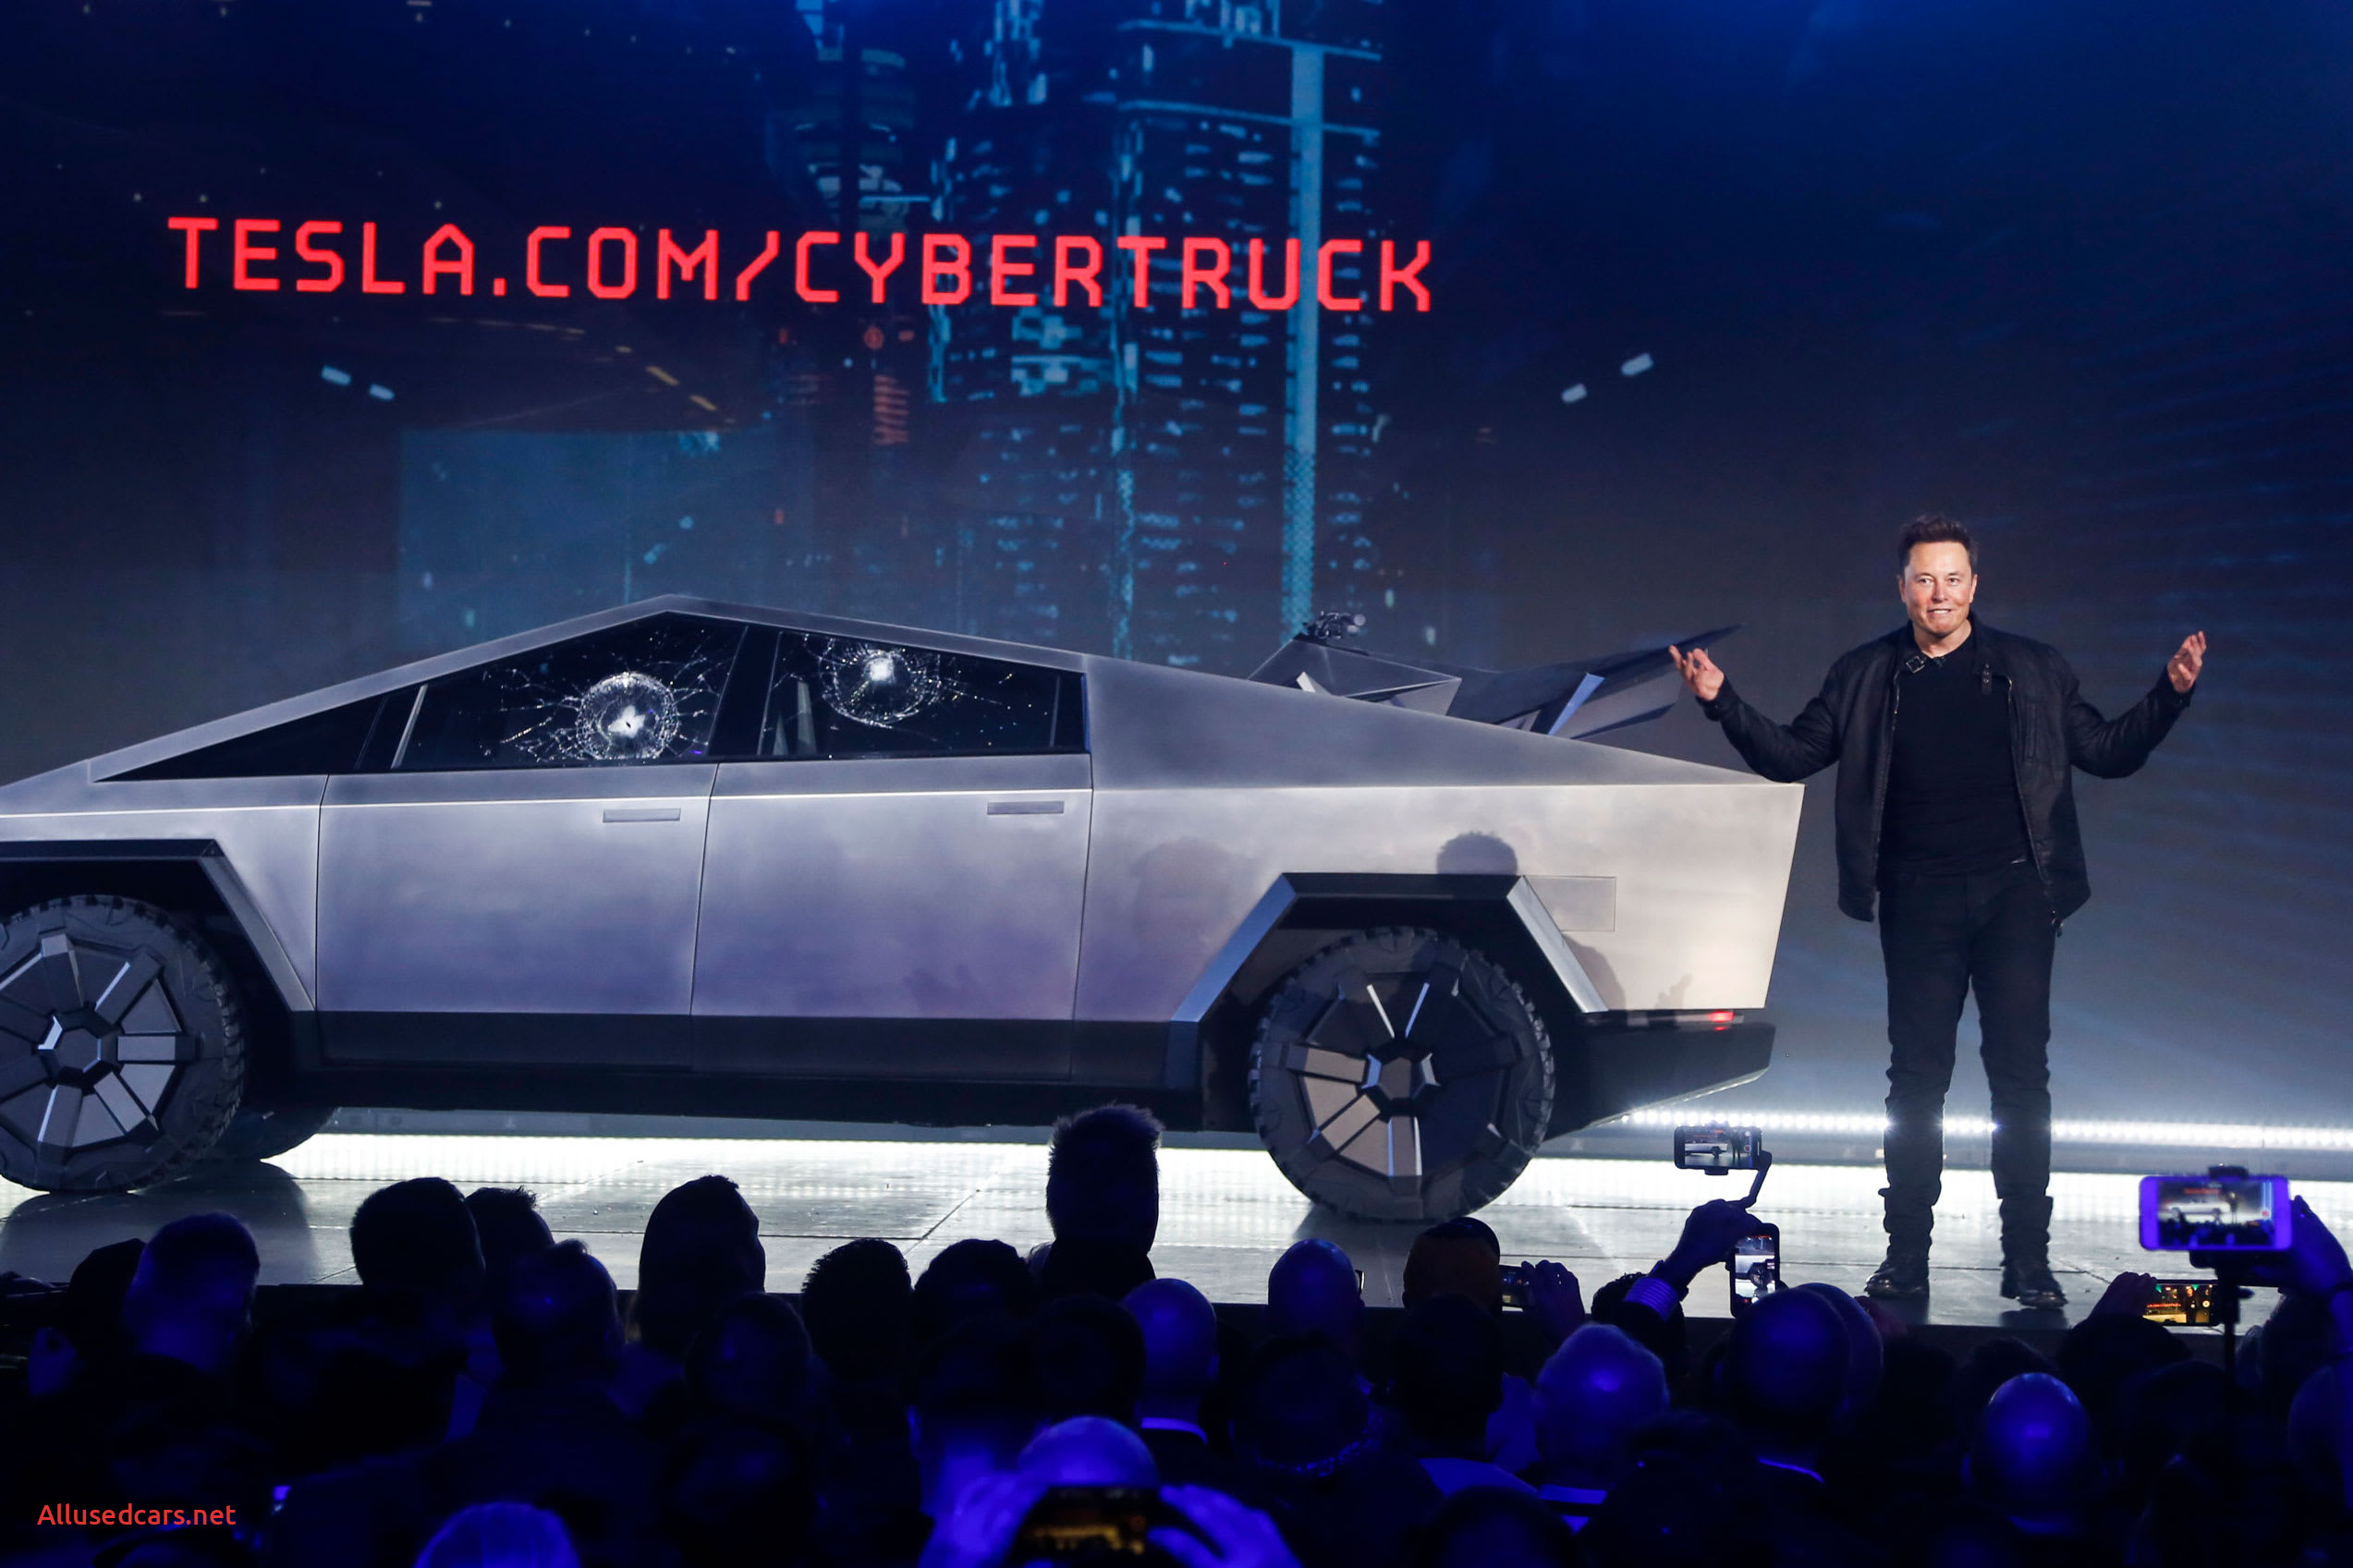 Is Tesla Cybertruck Real Unique Watch Tesla Unveil Its Electric Pickup Cybertruck In A Demo Gone Awry